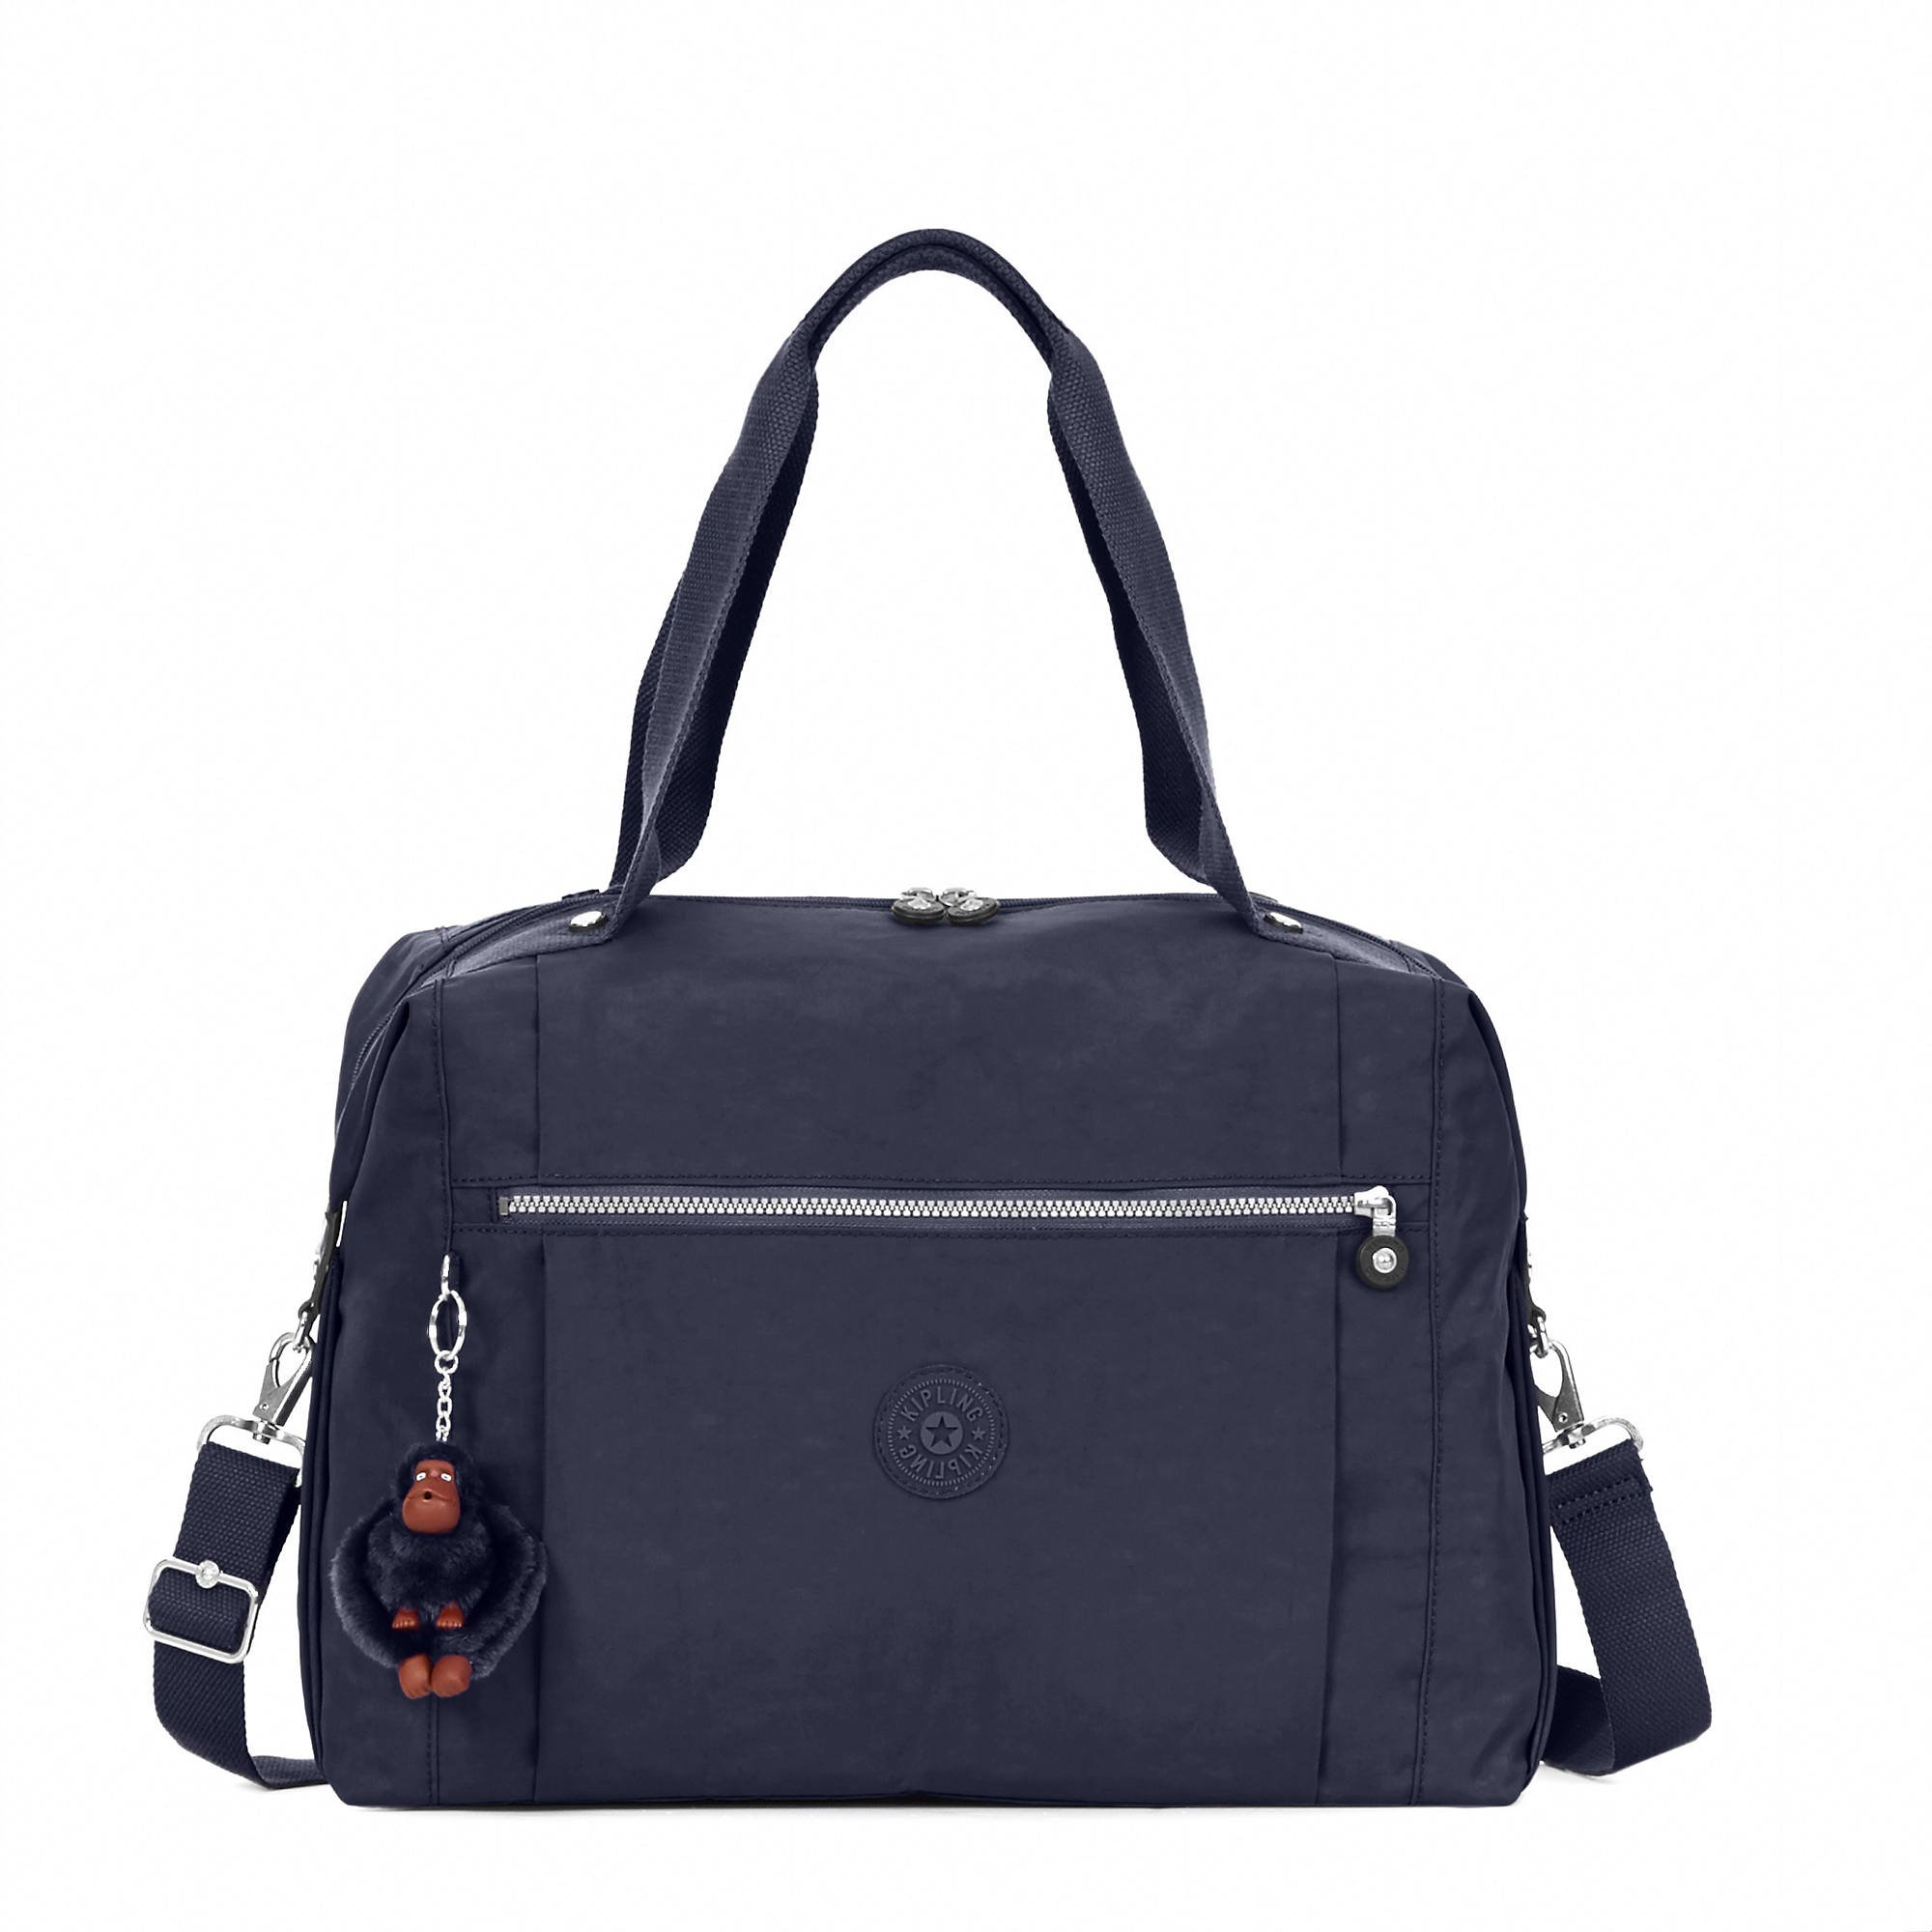 Kipling Women's Ferra Weekender Duffel Bag One Size Blue by Kipling